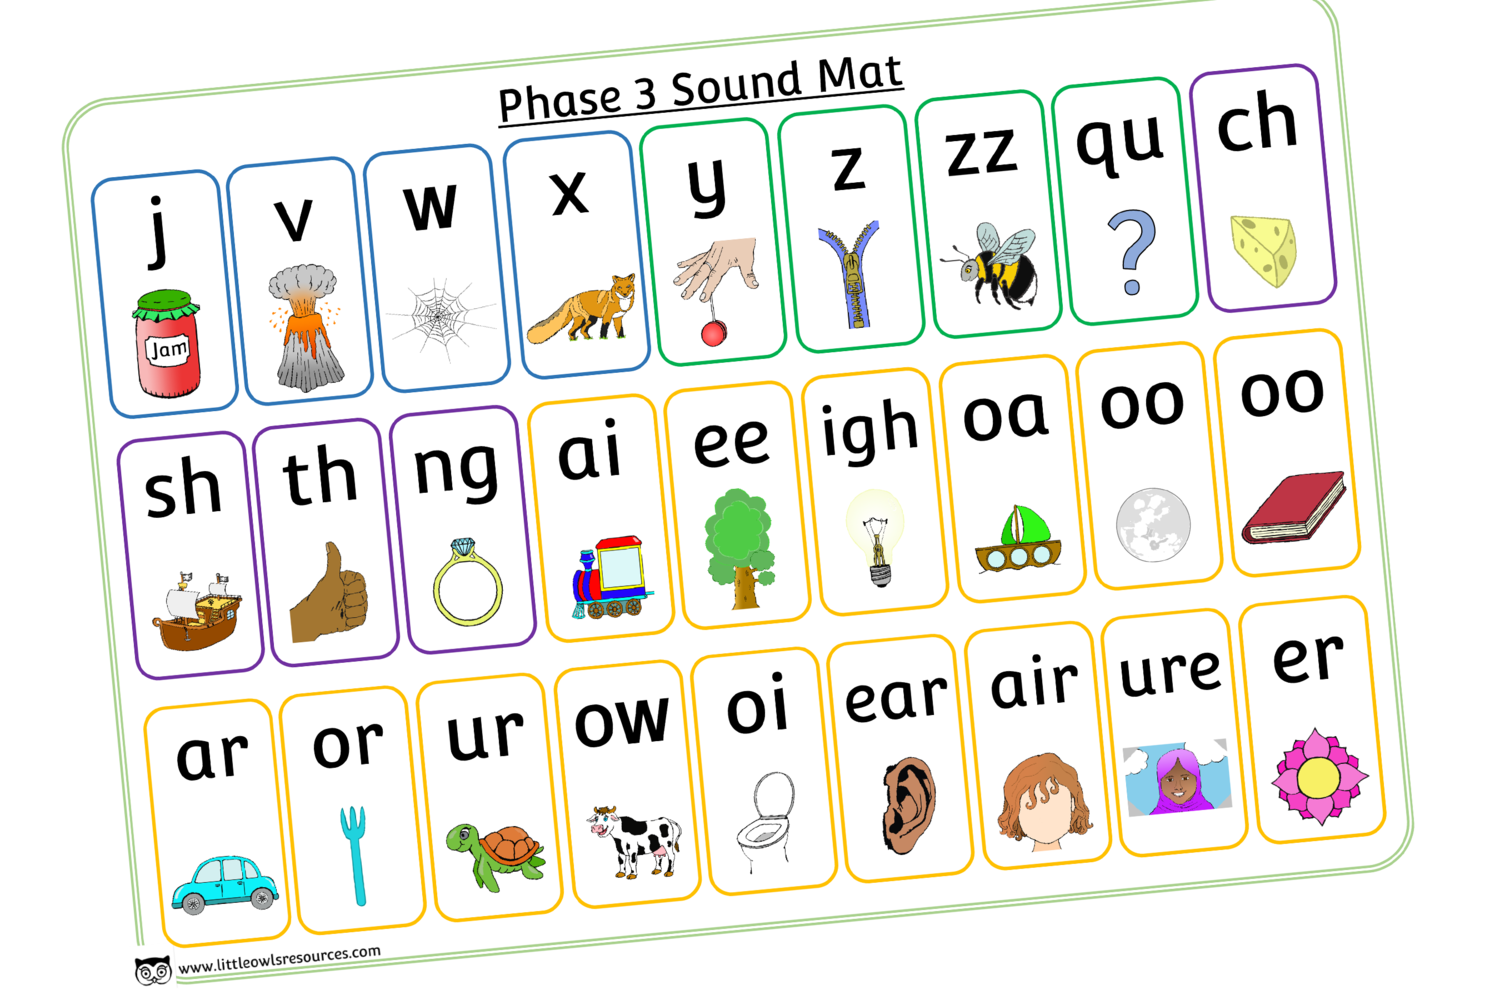 FREE Phase 3 Sounds Mat printable Early Years/EY (EYFS